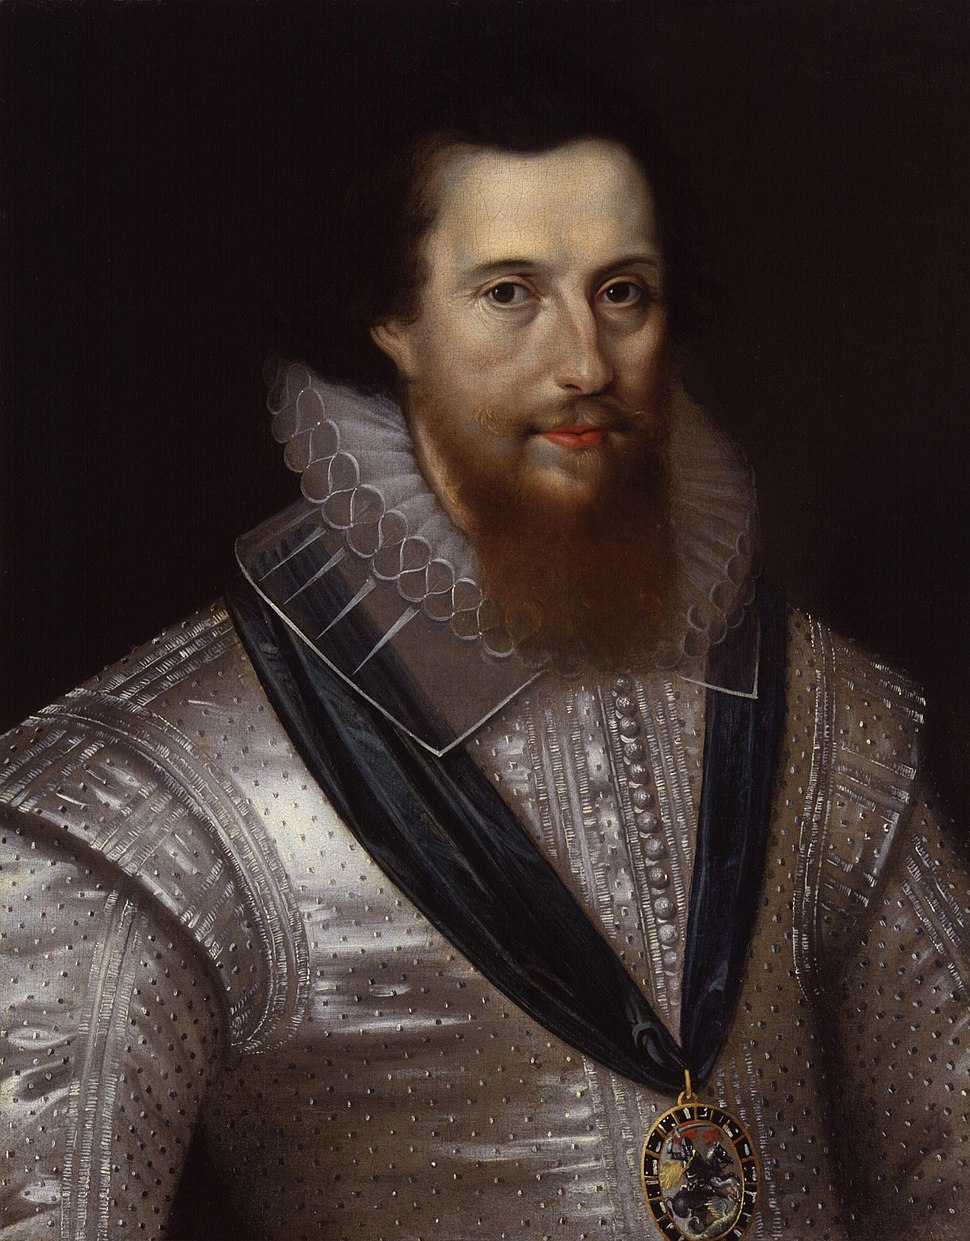 Robert Devereux, 2nd Earl of Essex by Marcus Gheeraerts the Younger